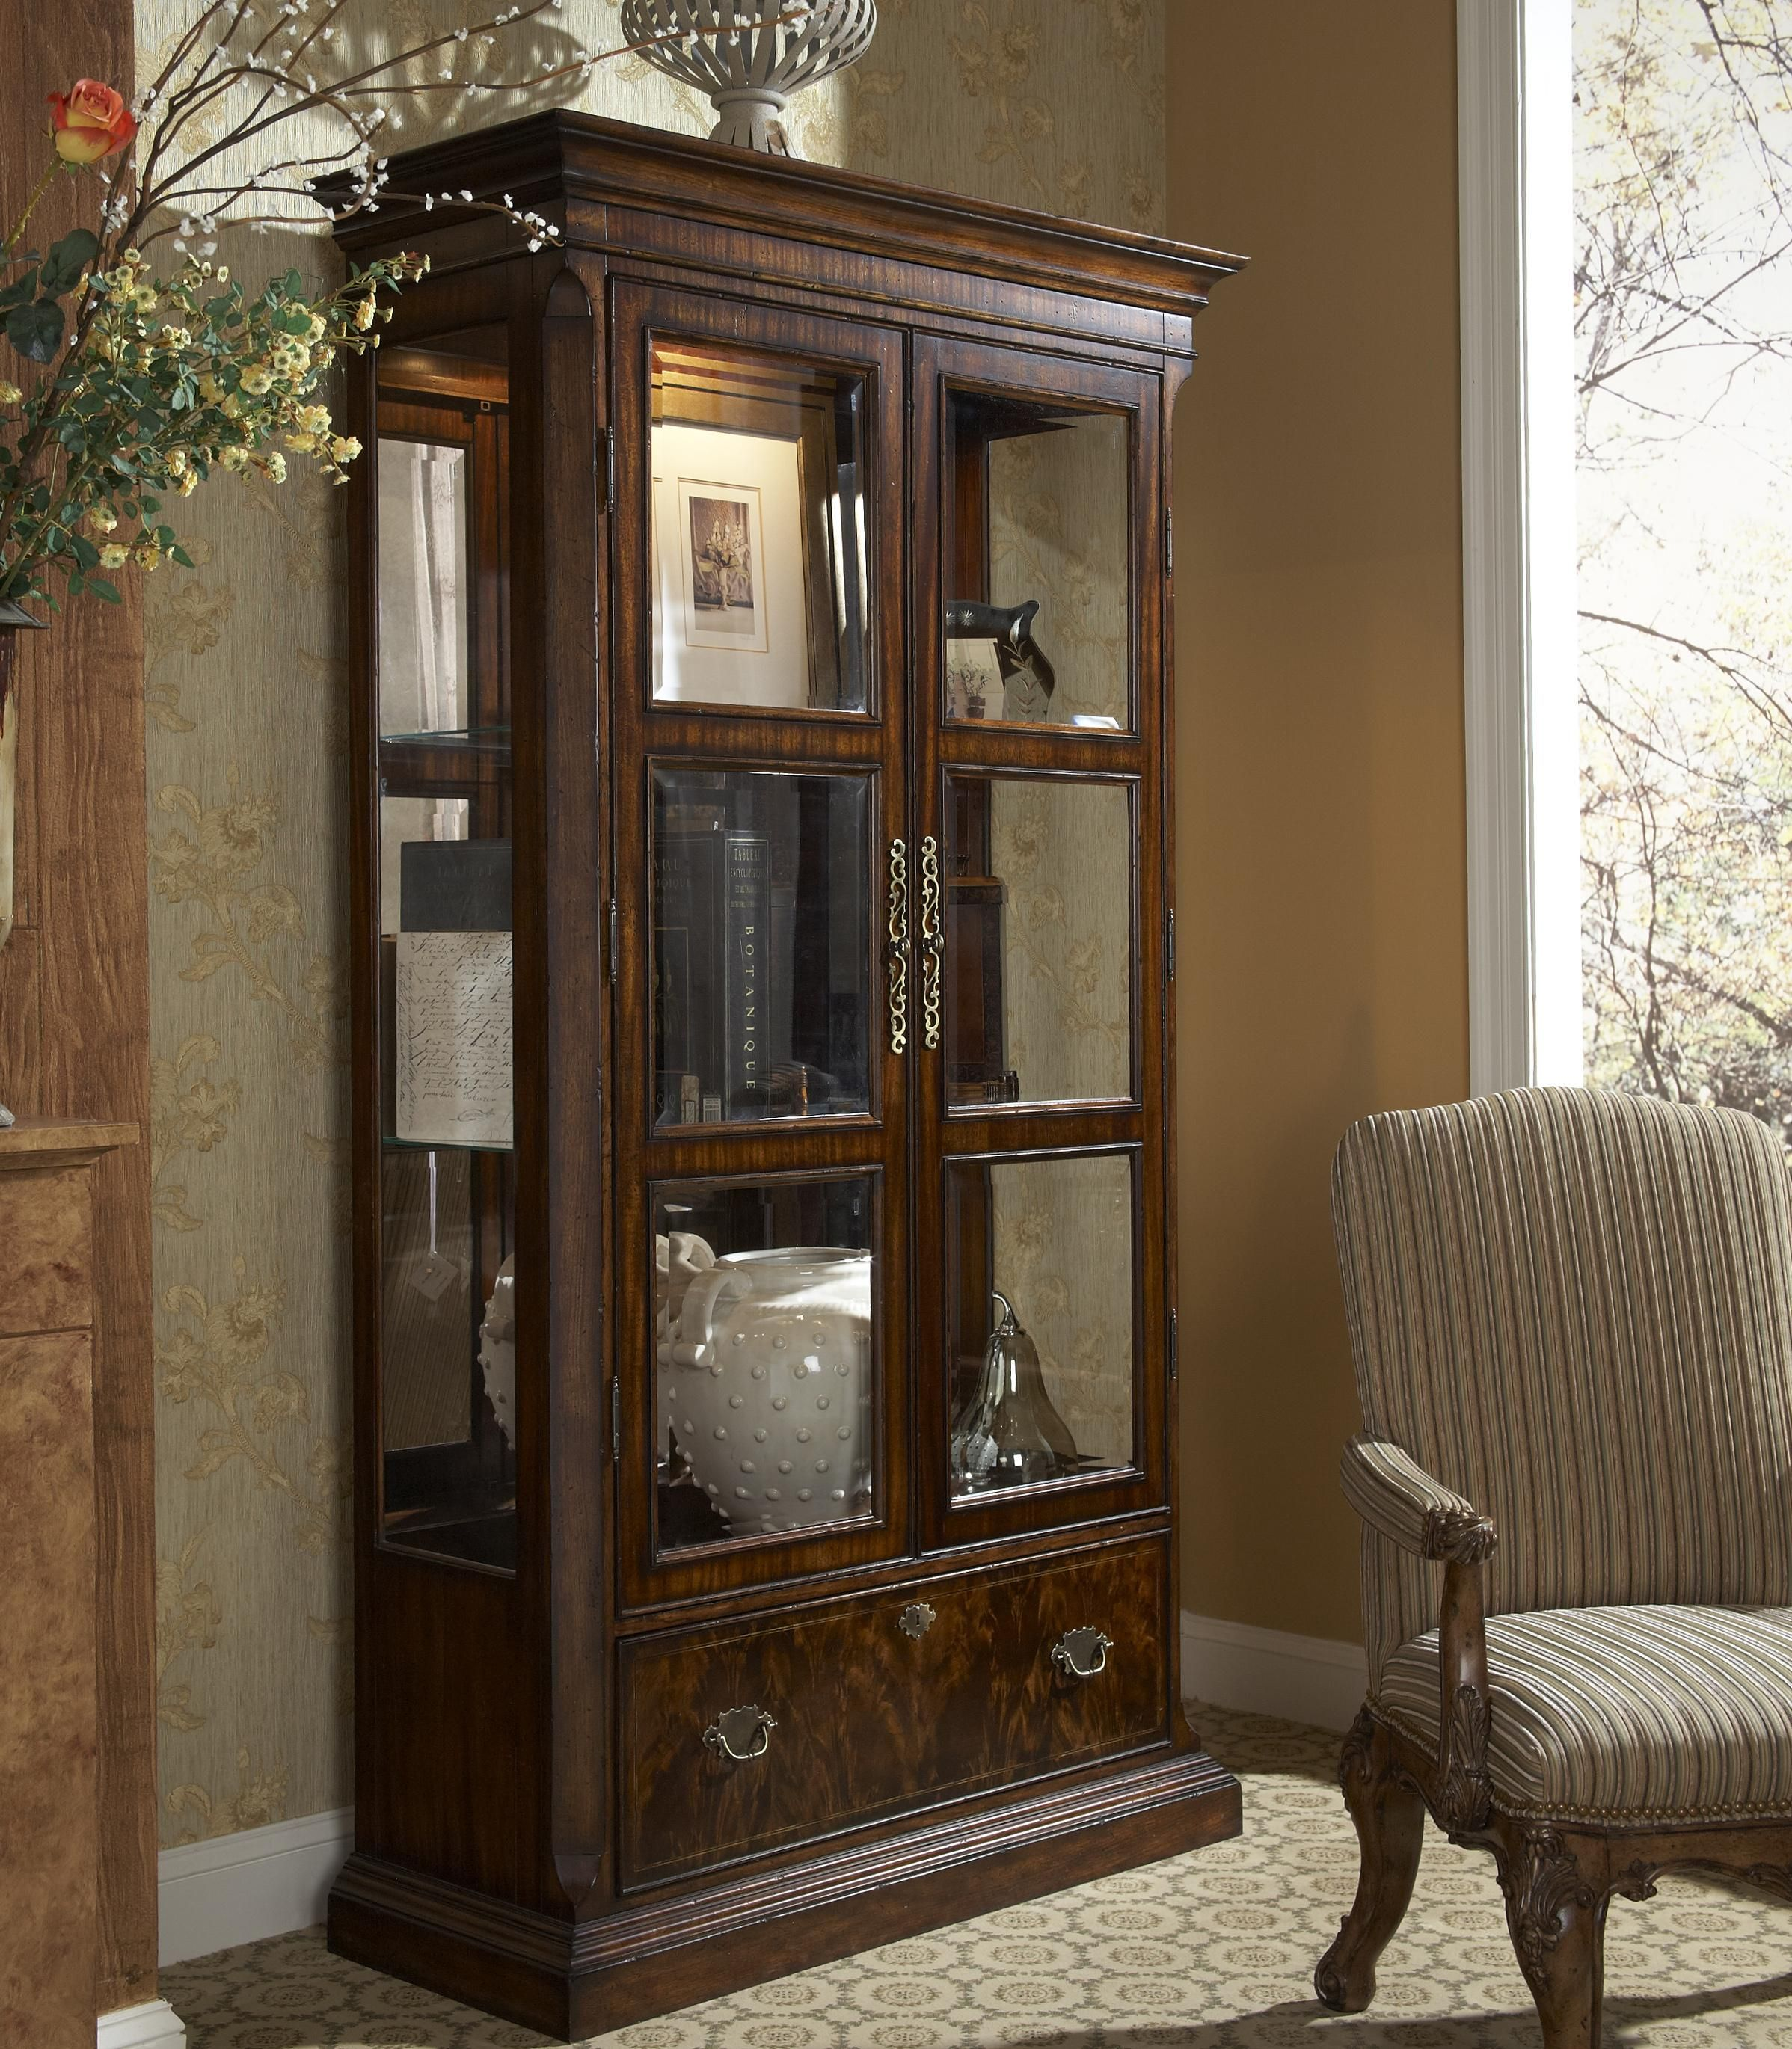 Charmant Hyde Park Traditional Curio China Cabinet By Fine Furniture Design   Alison  Craig Home Furnishings   Curio Cabinet Naples, Fort Myers, Pelican Bay, ...